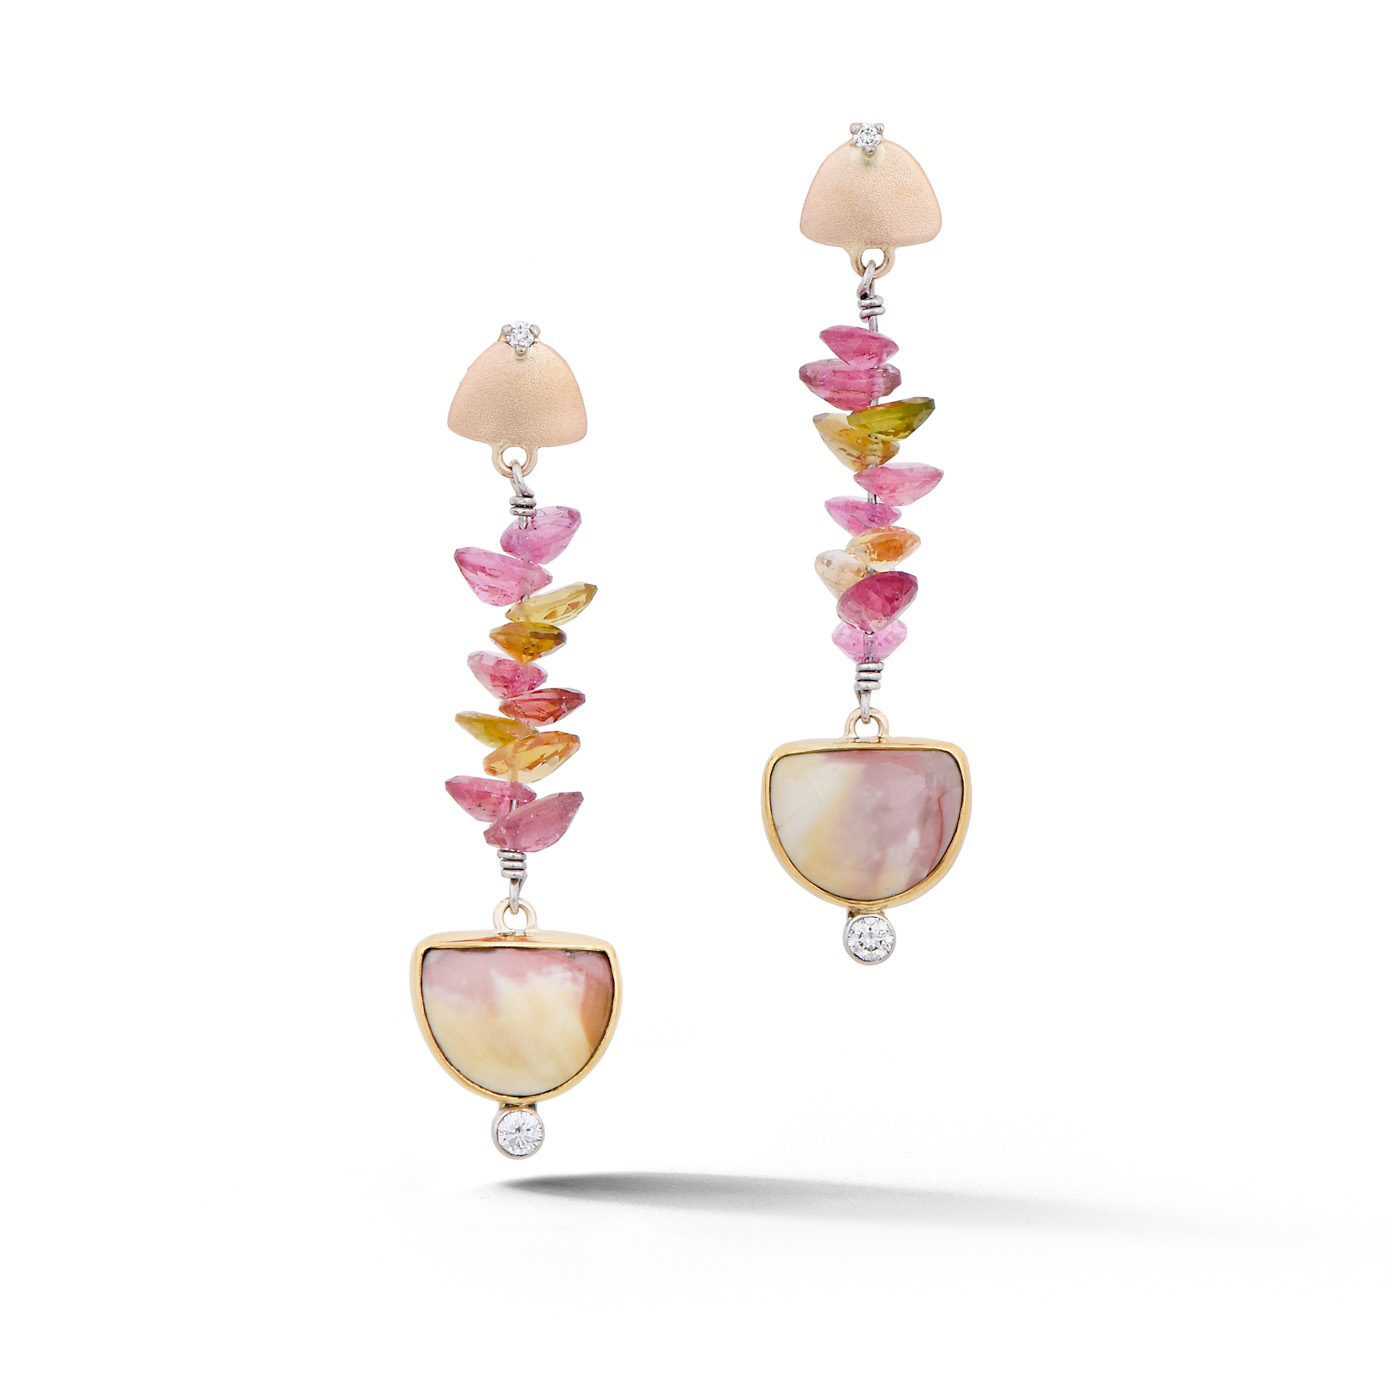 Jasper and Tourmaline Earrings in Gold